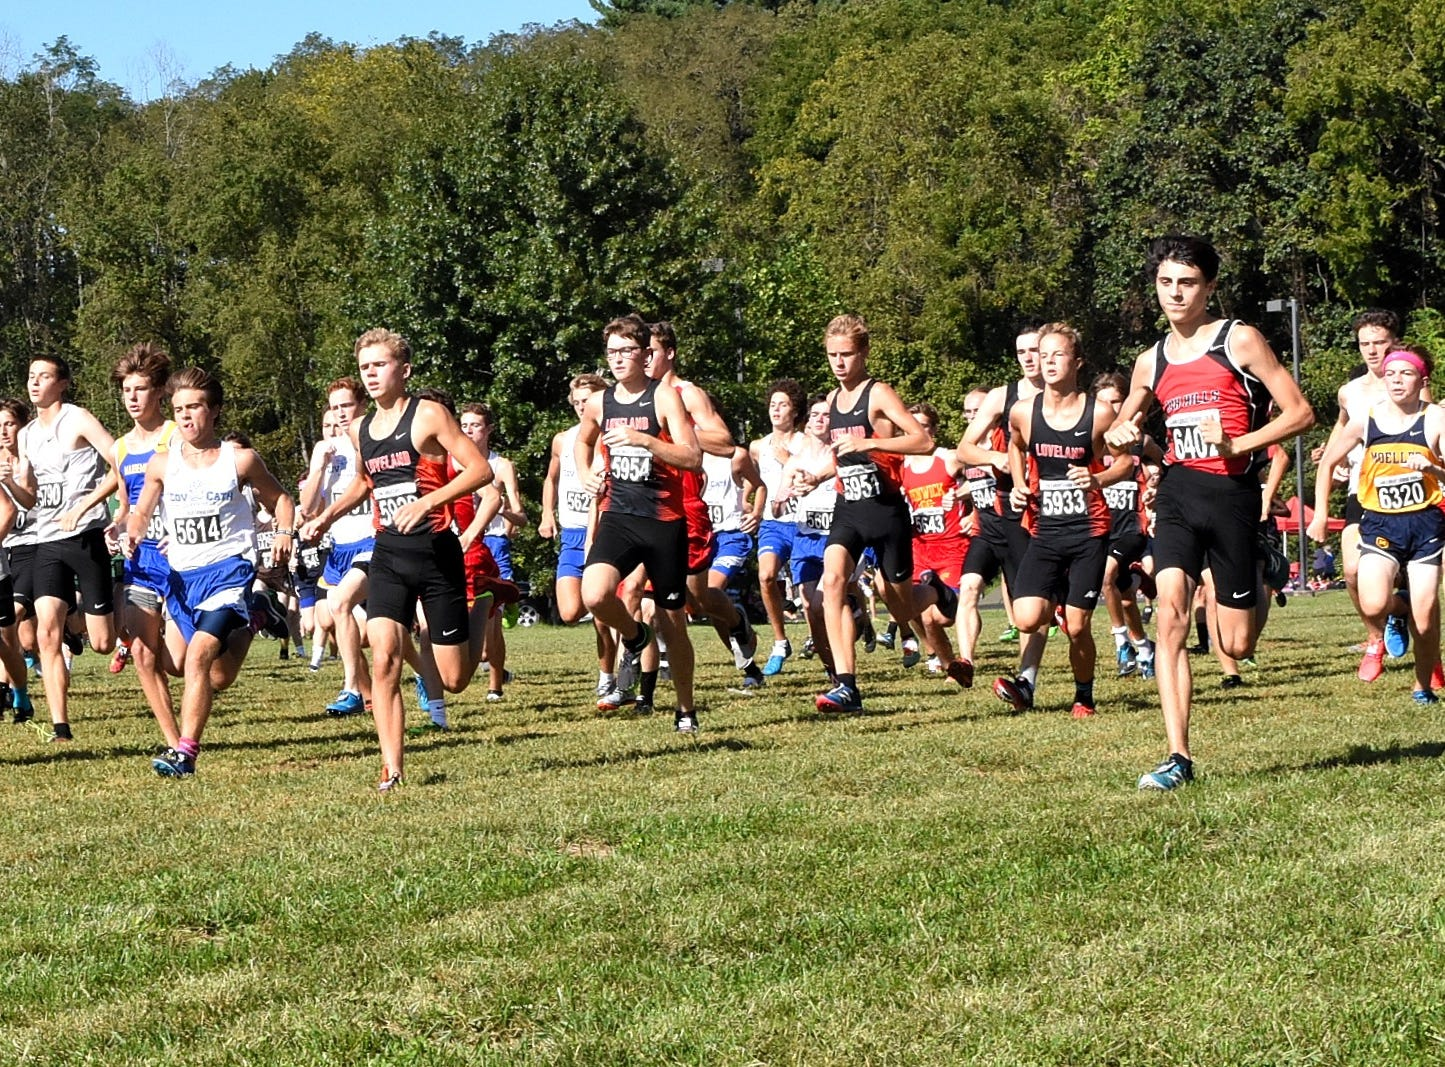 The guys are off and running in the boys varsity 5K race at the 2018 Milford Cross Country Invitational, Sept. 15, 2018.